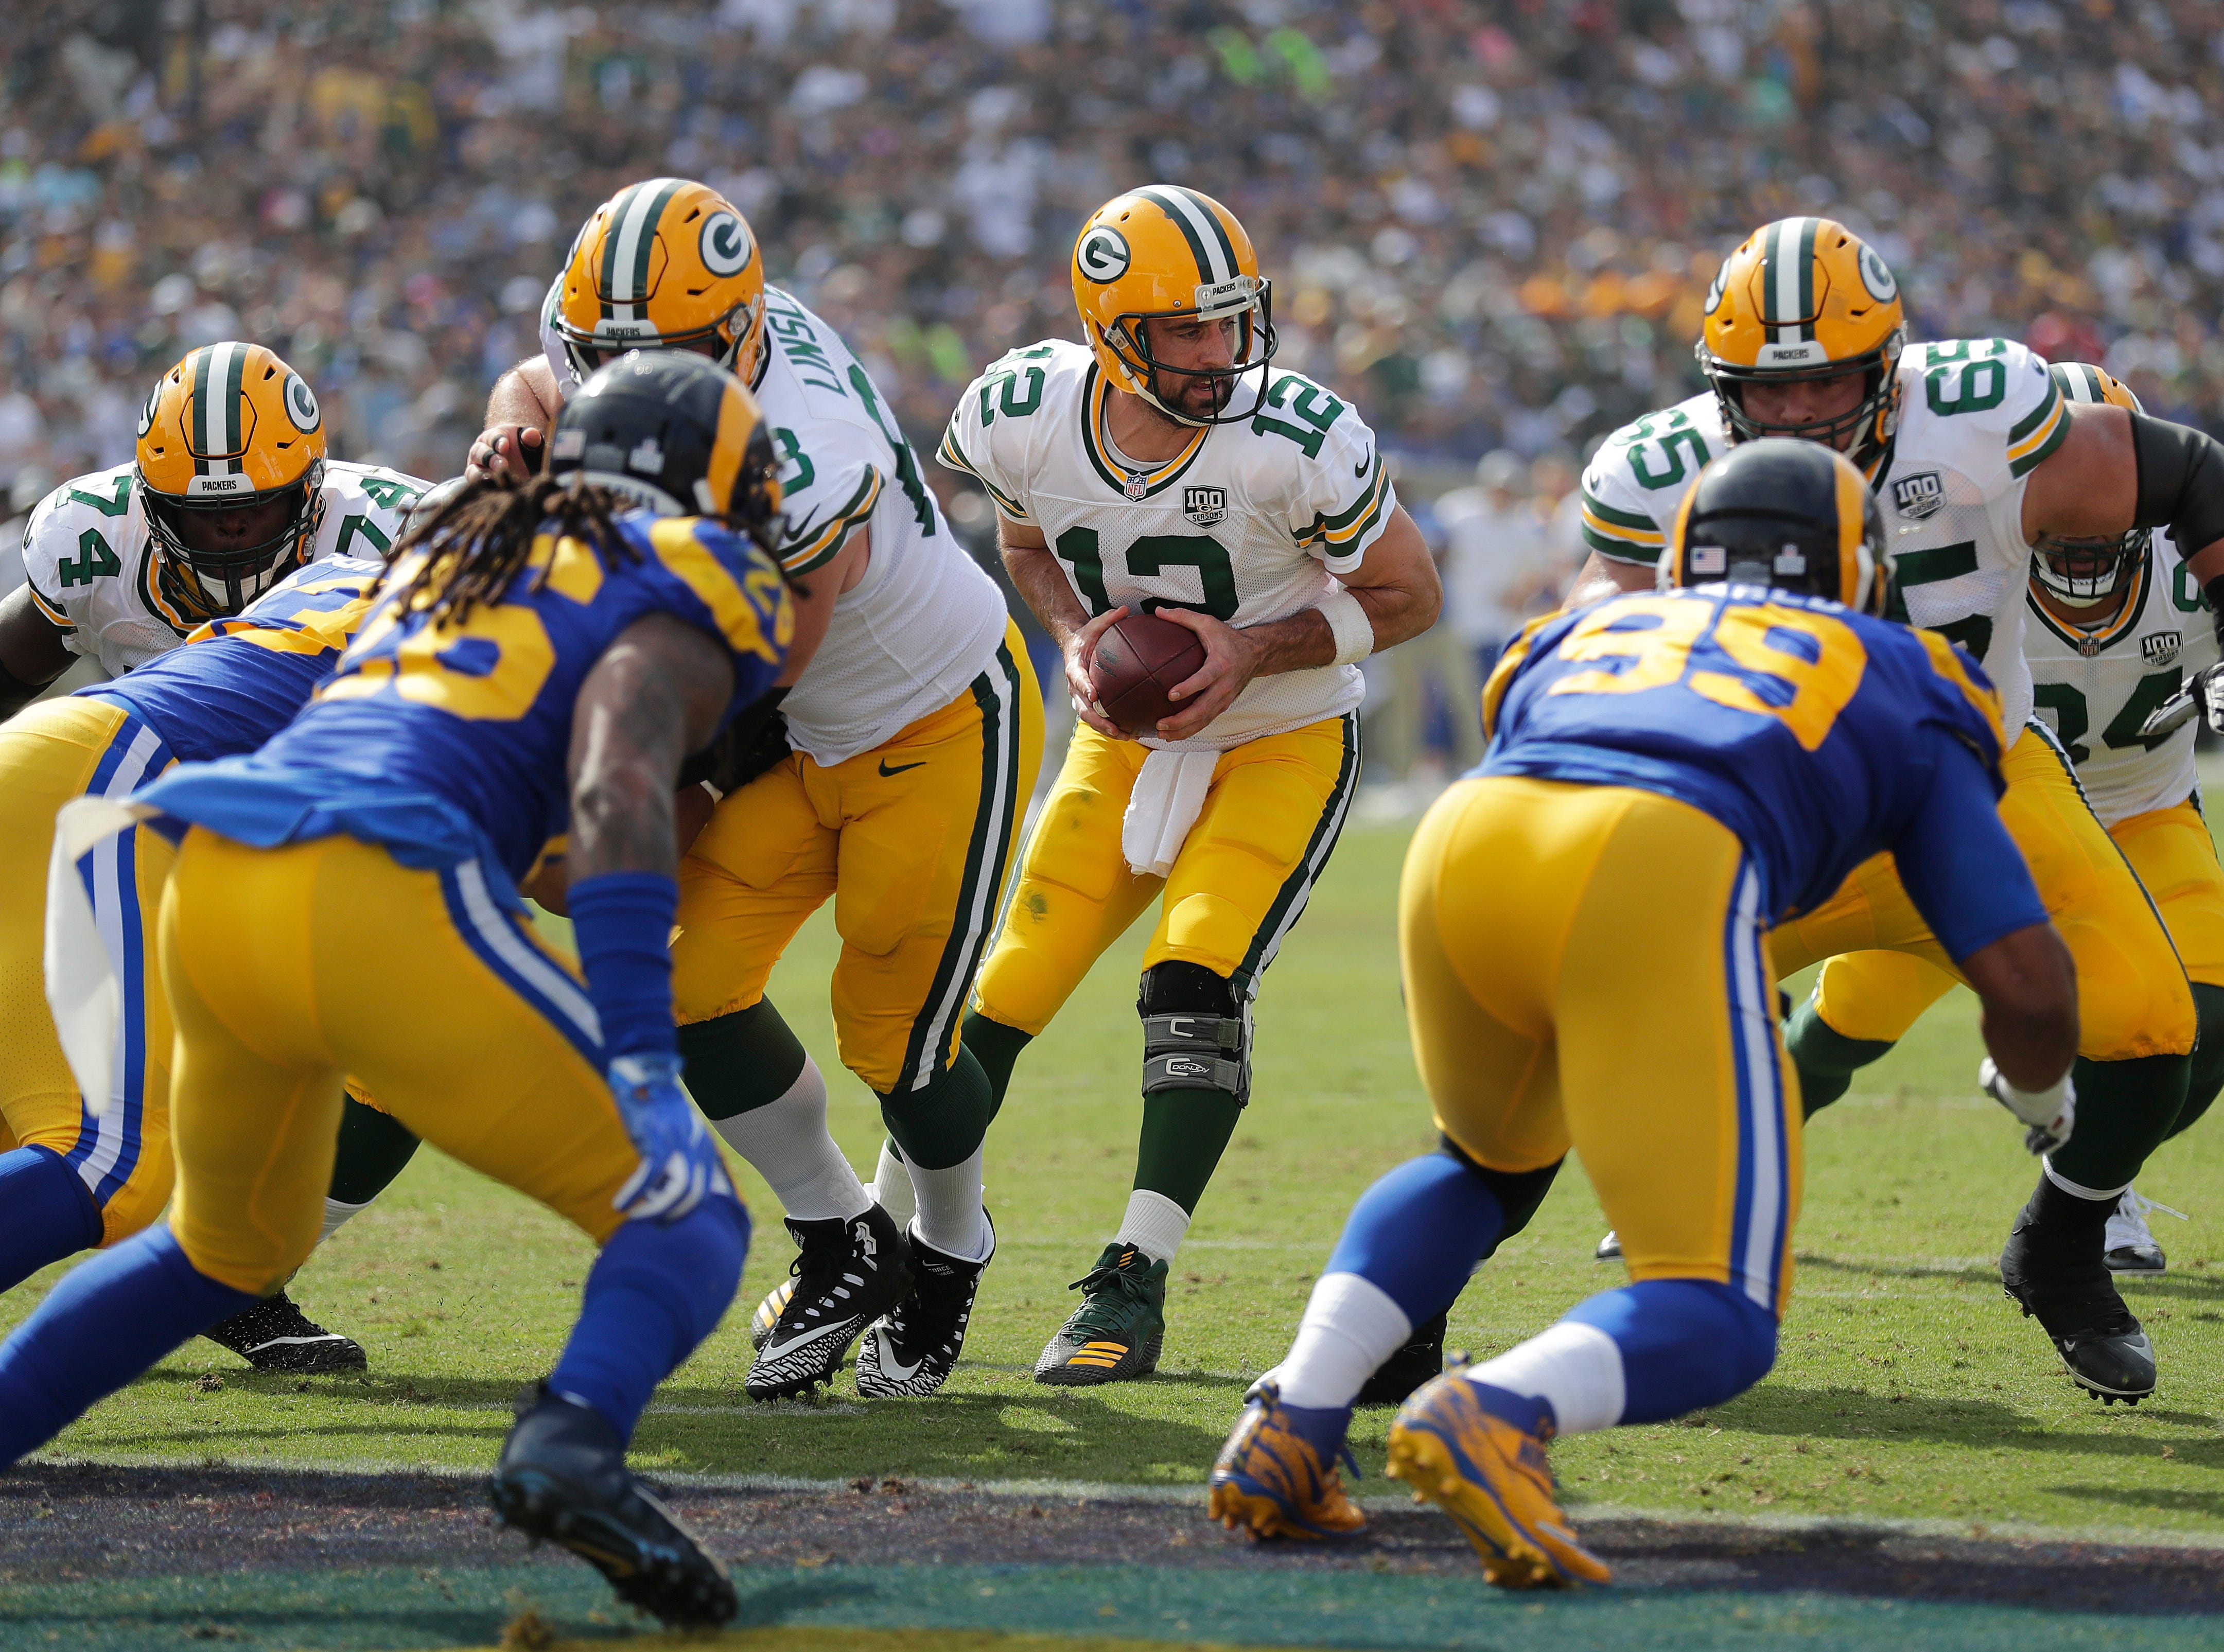 Green Bay Packers quarterback Aaron Rodgers (12) takes the snap at the goal line against the LA Rams Sunday, October 28, 2018 at the Memorial Coliseum in Los Angeles.